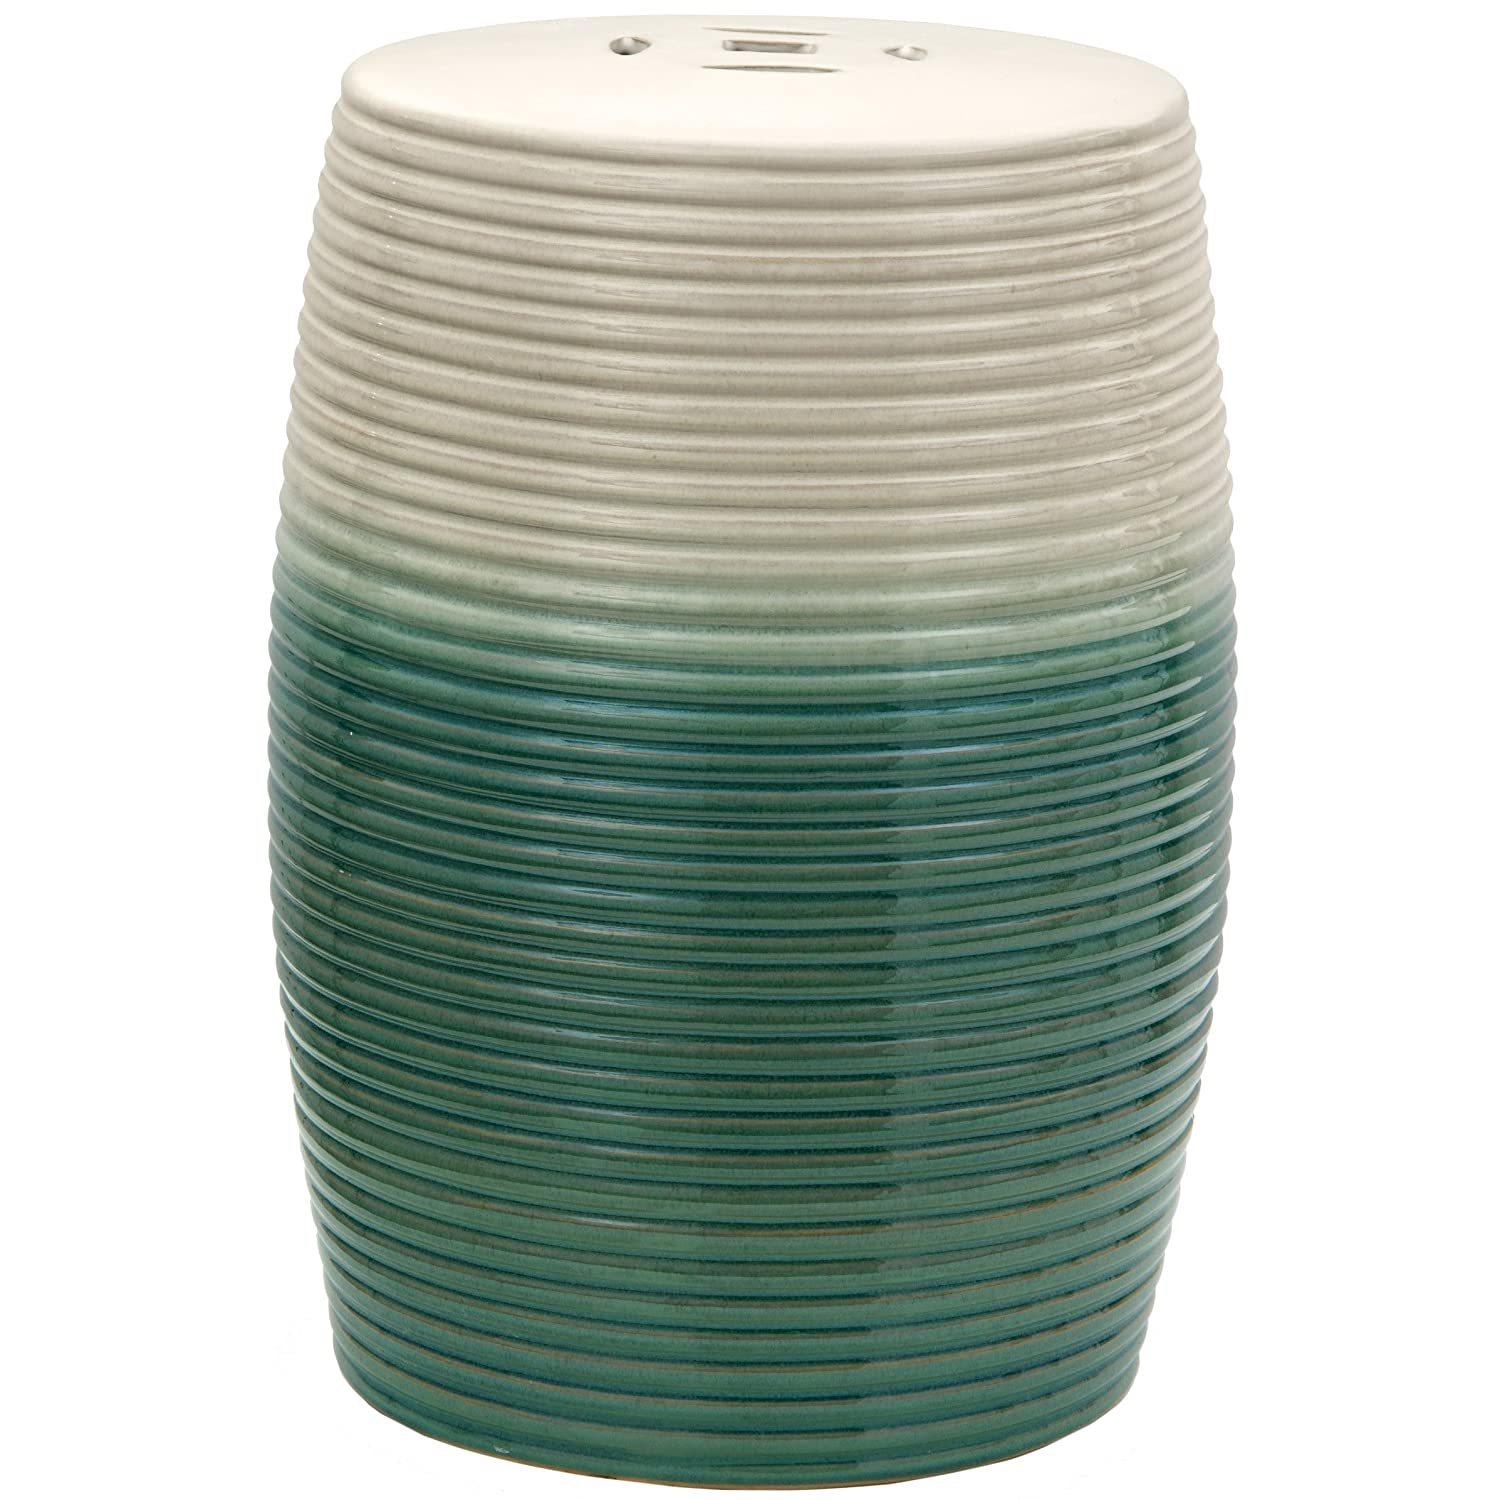 "Oriental Furniture 18"" Beige & Green Ribbed Porcelain Garden Stool"